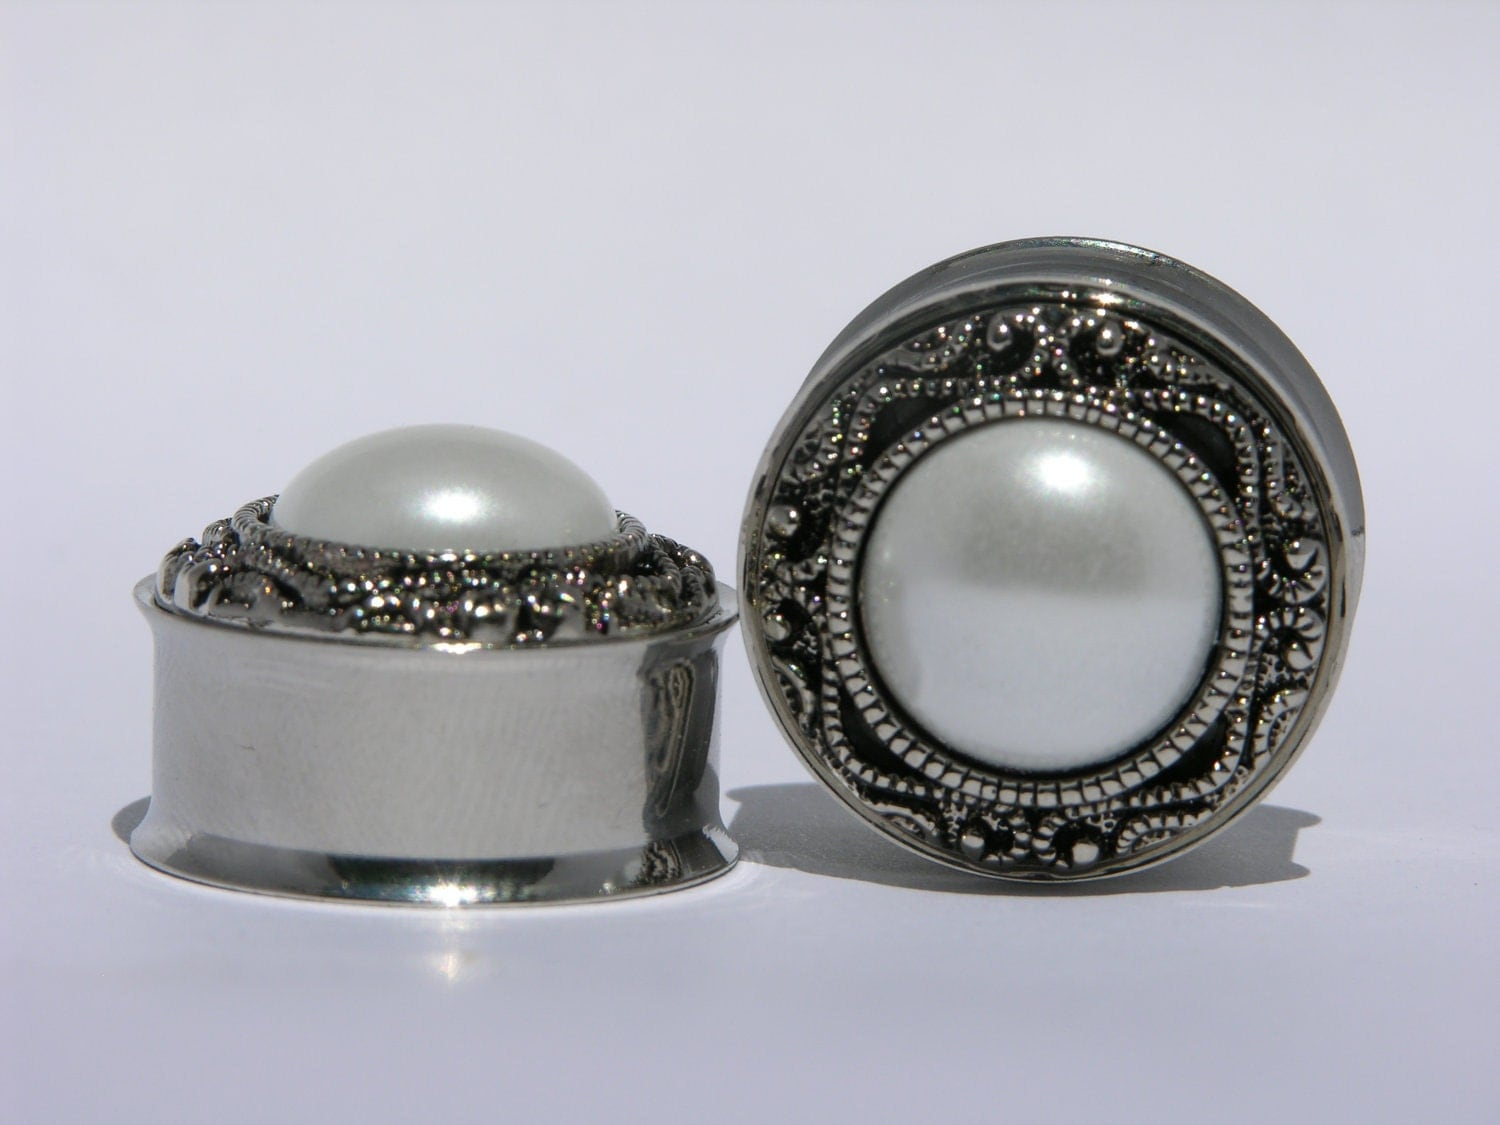 Classic Silver and Pearl Wedding Plugs 00 Gauge 7/16 1/2 9/16